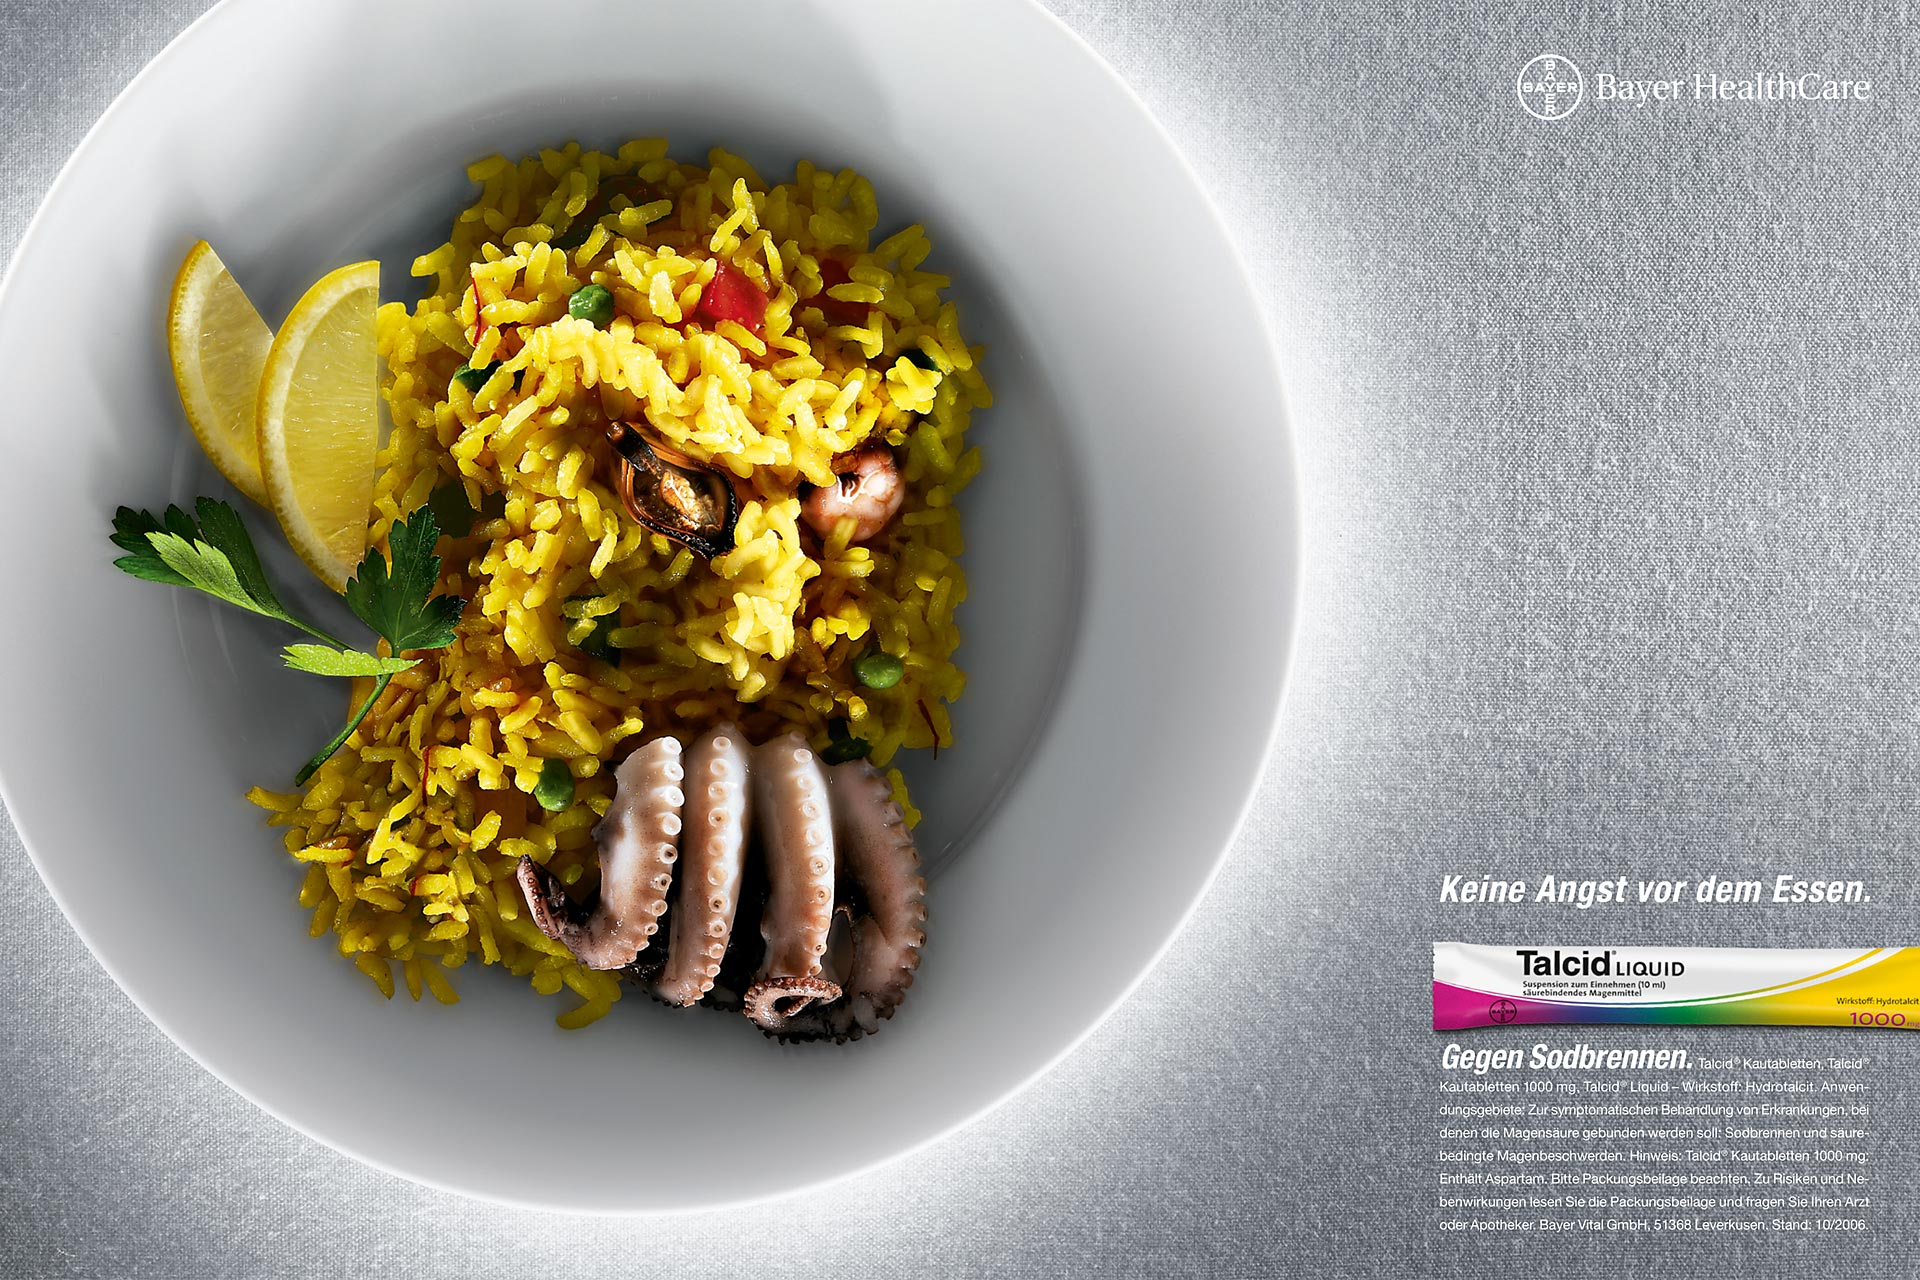 Sabine-Scheer-food-photography-paella-monster